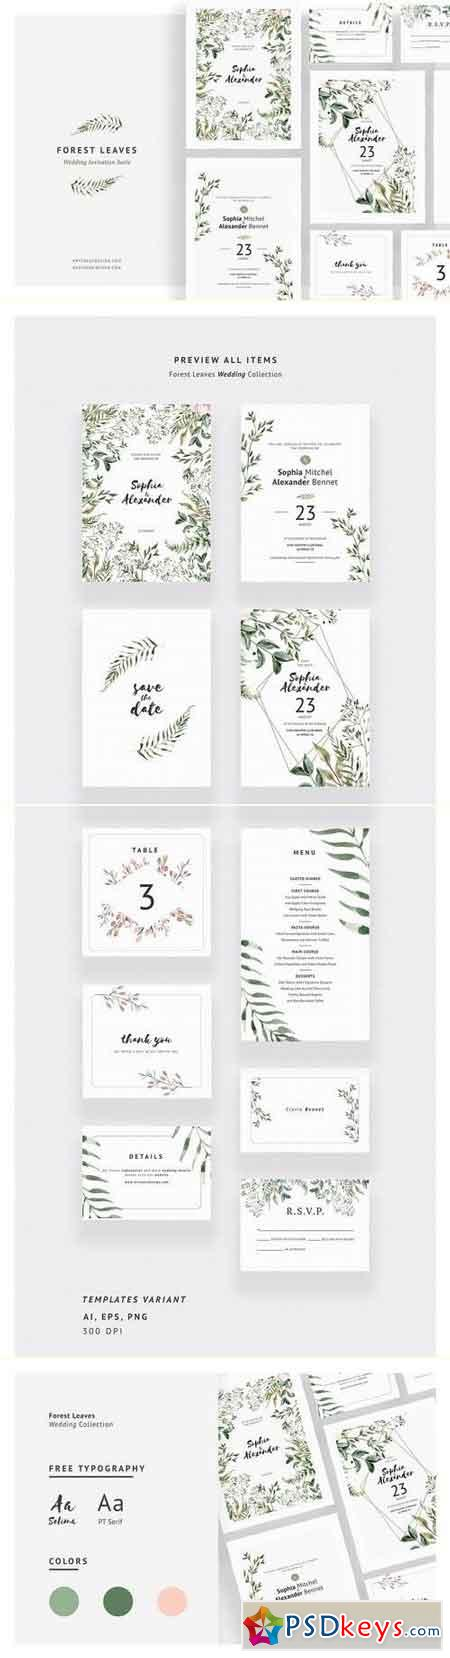 Forest Leaves Wedding Invitations